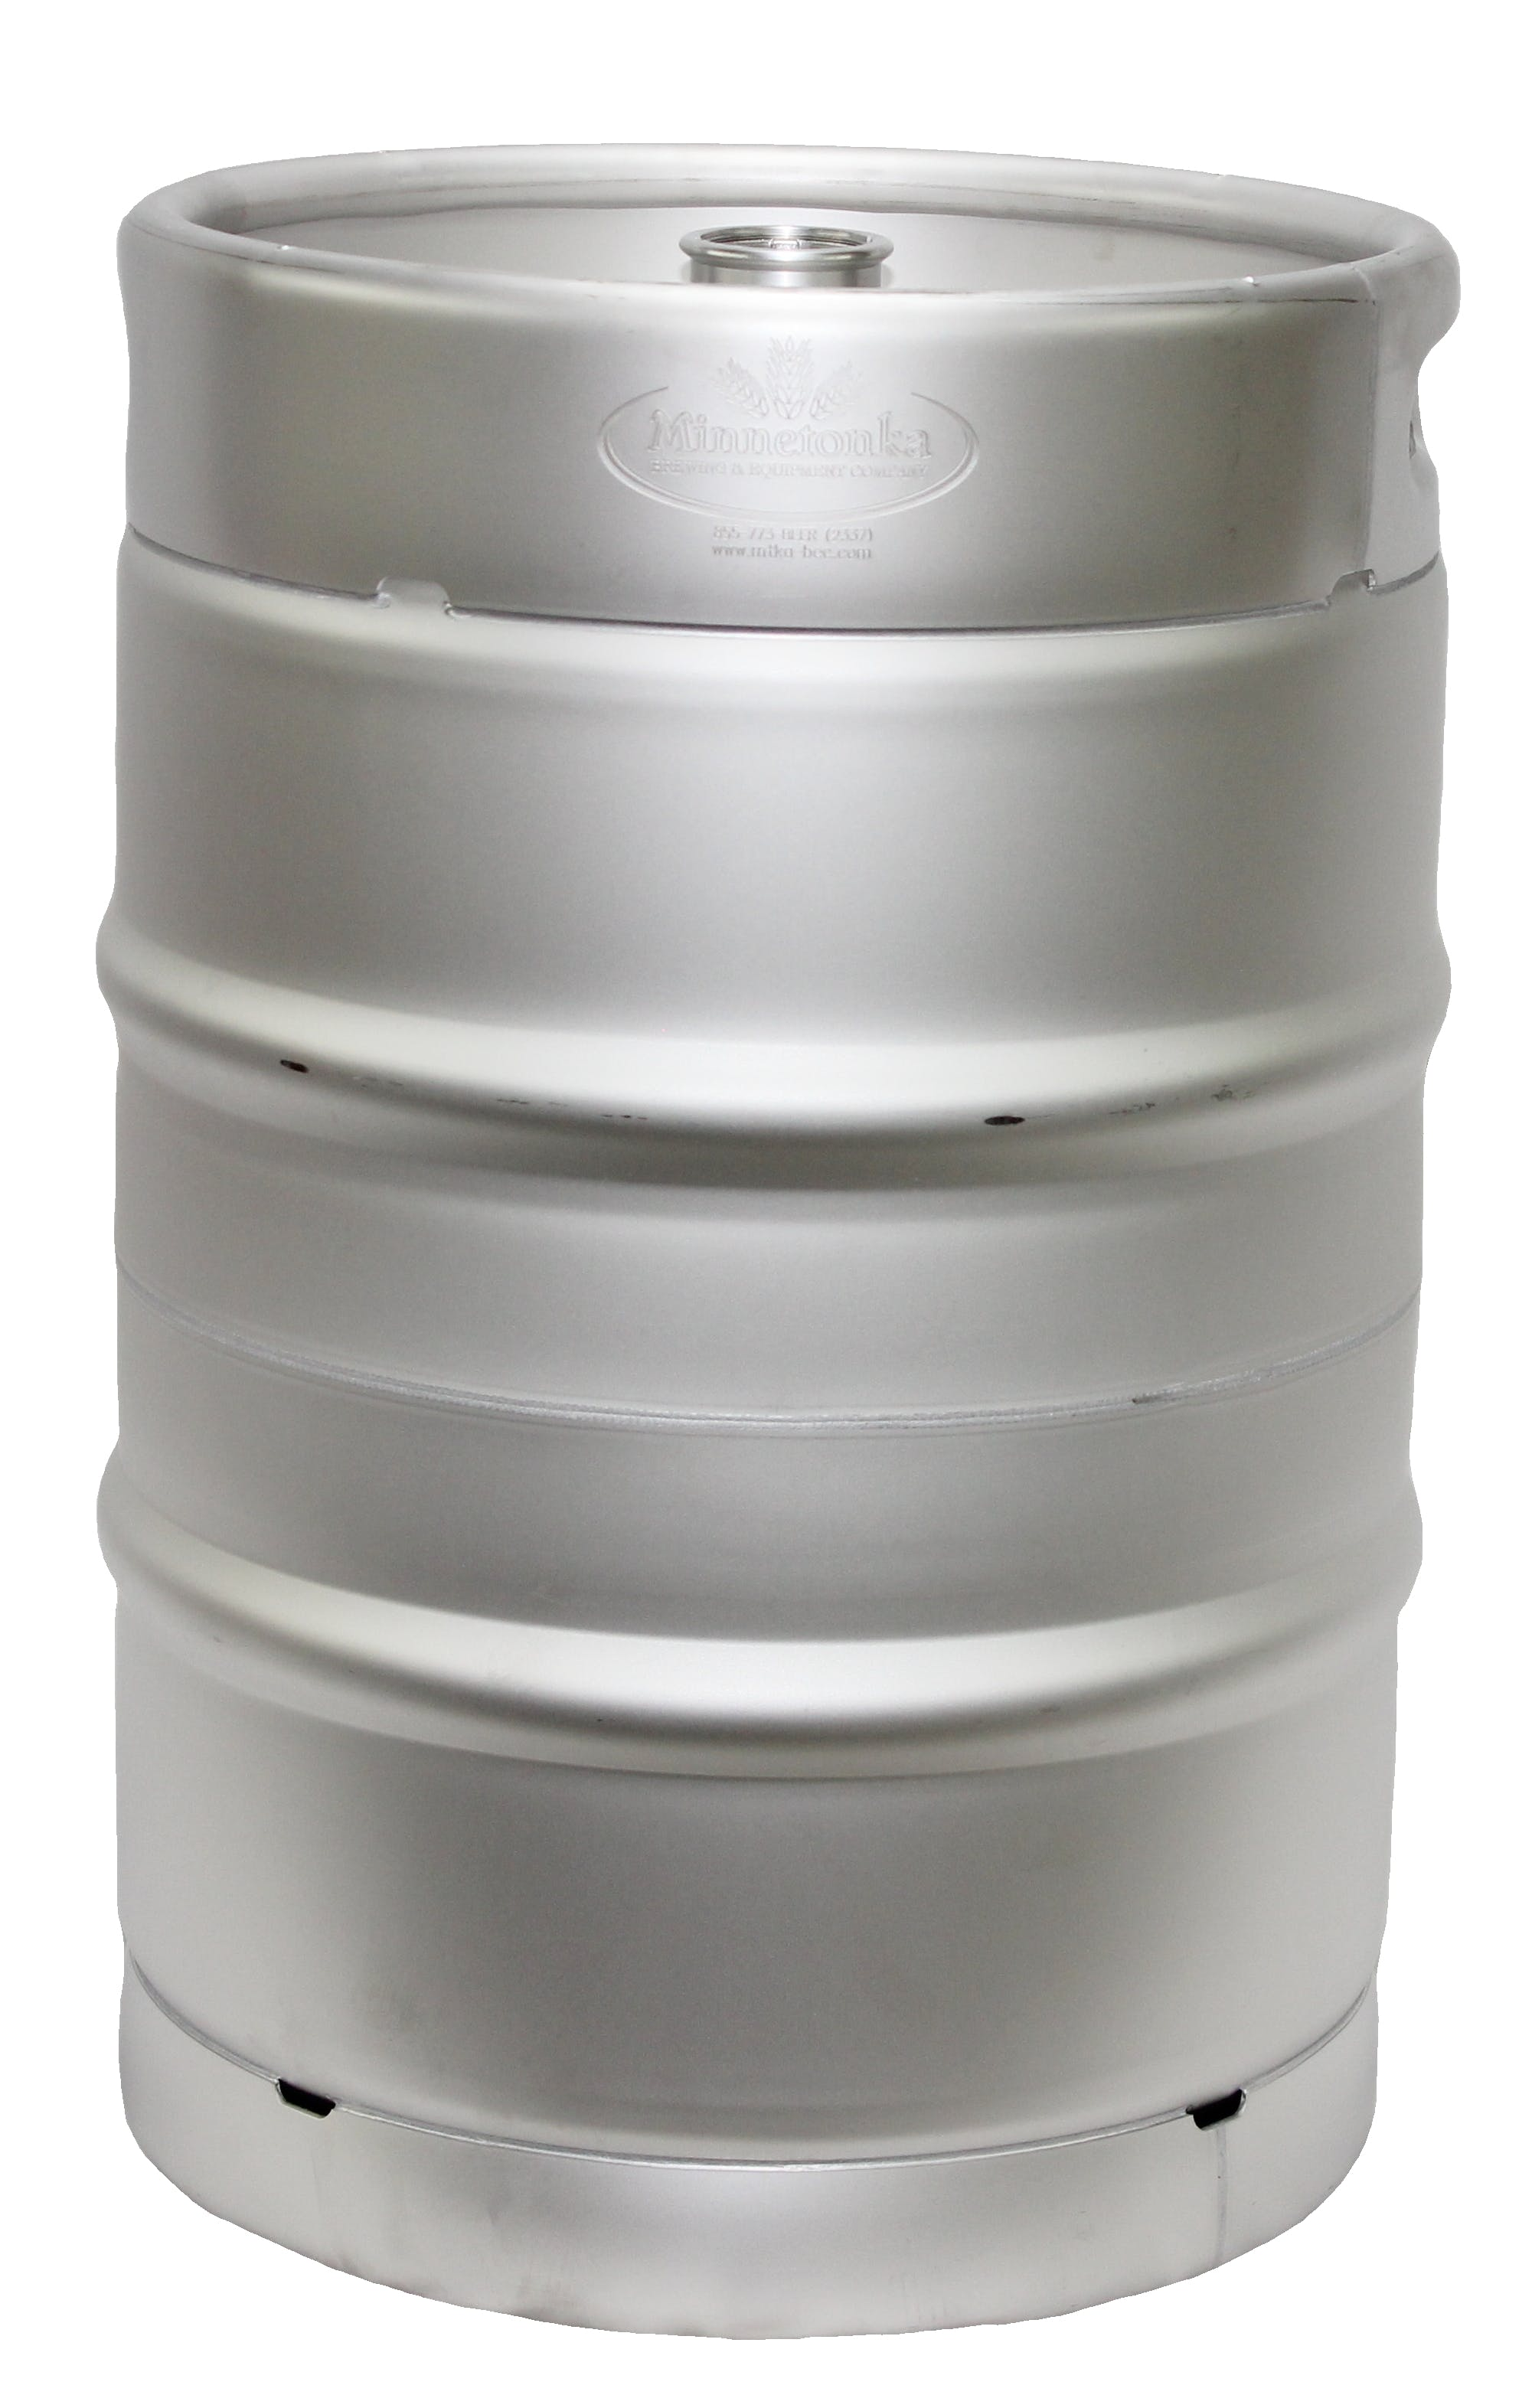 1/2 Barrel Keg Keg sold by Minnetonka Brewing & Equipment Company